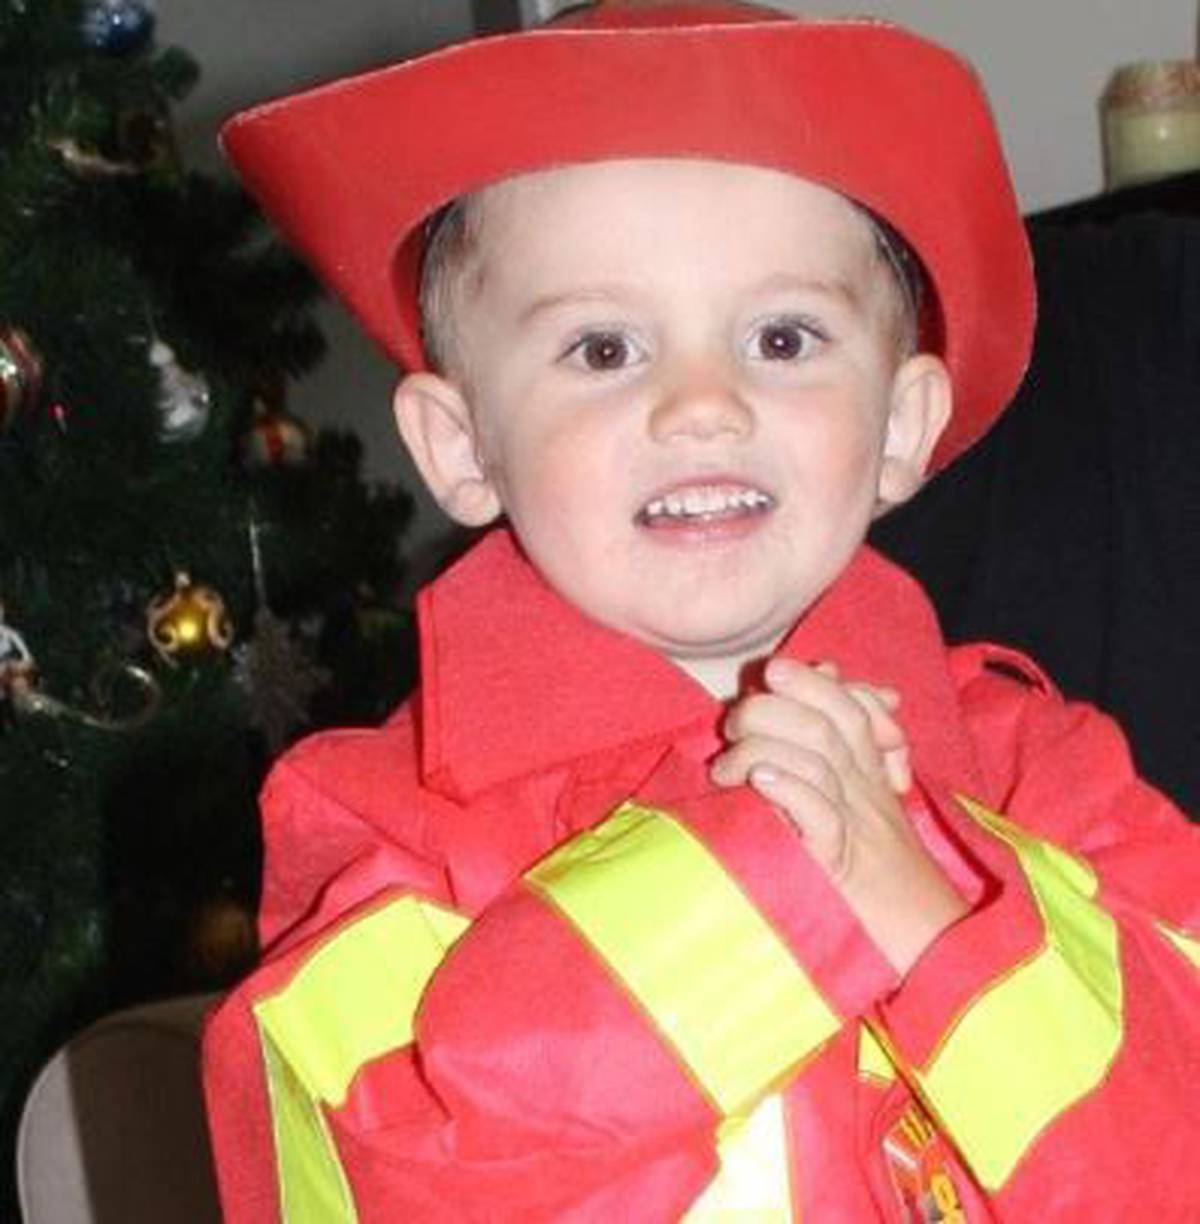 Paedophile to testify at William Tyrrell inquest